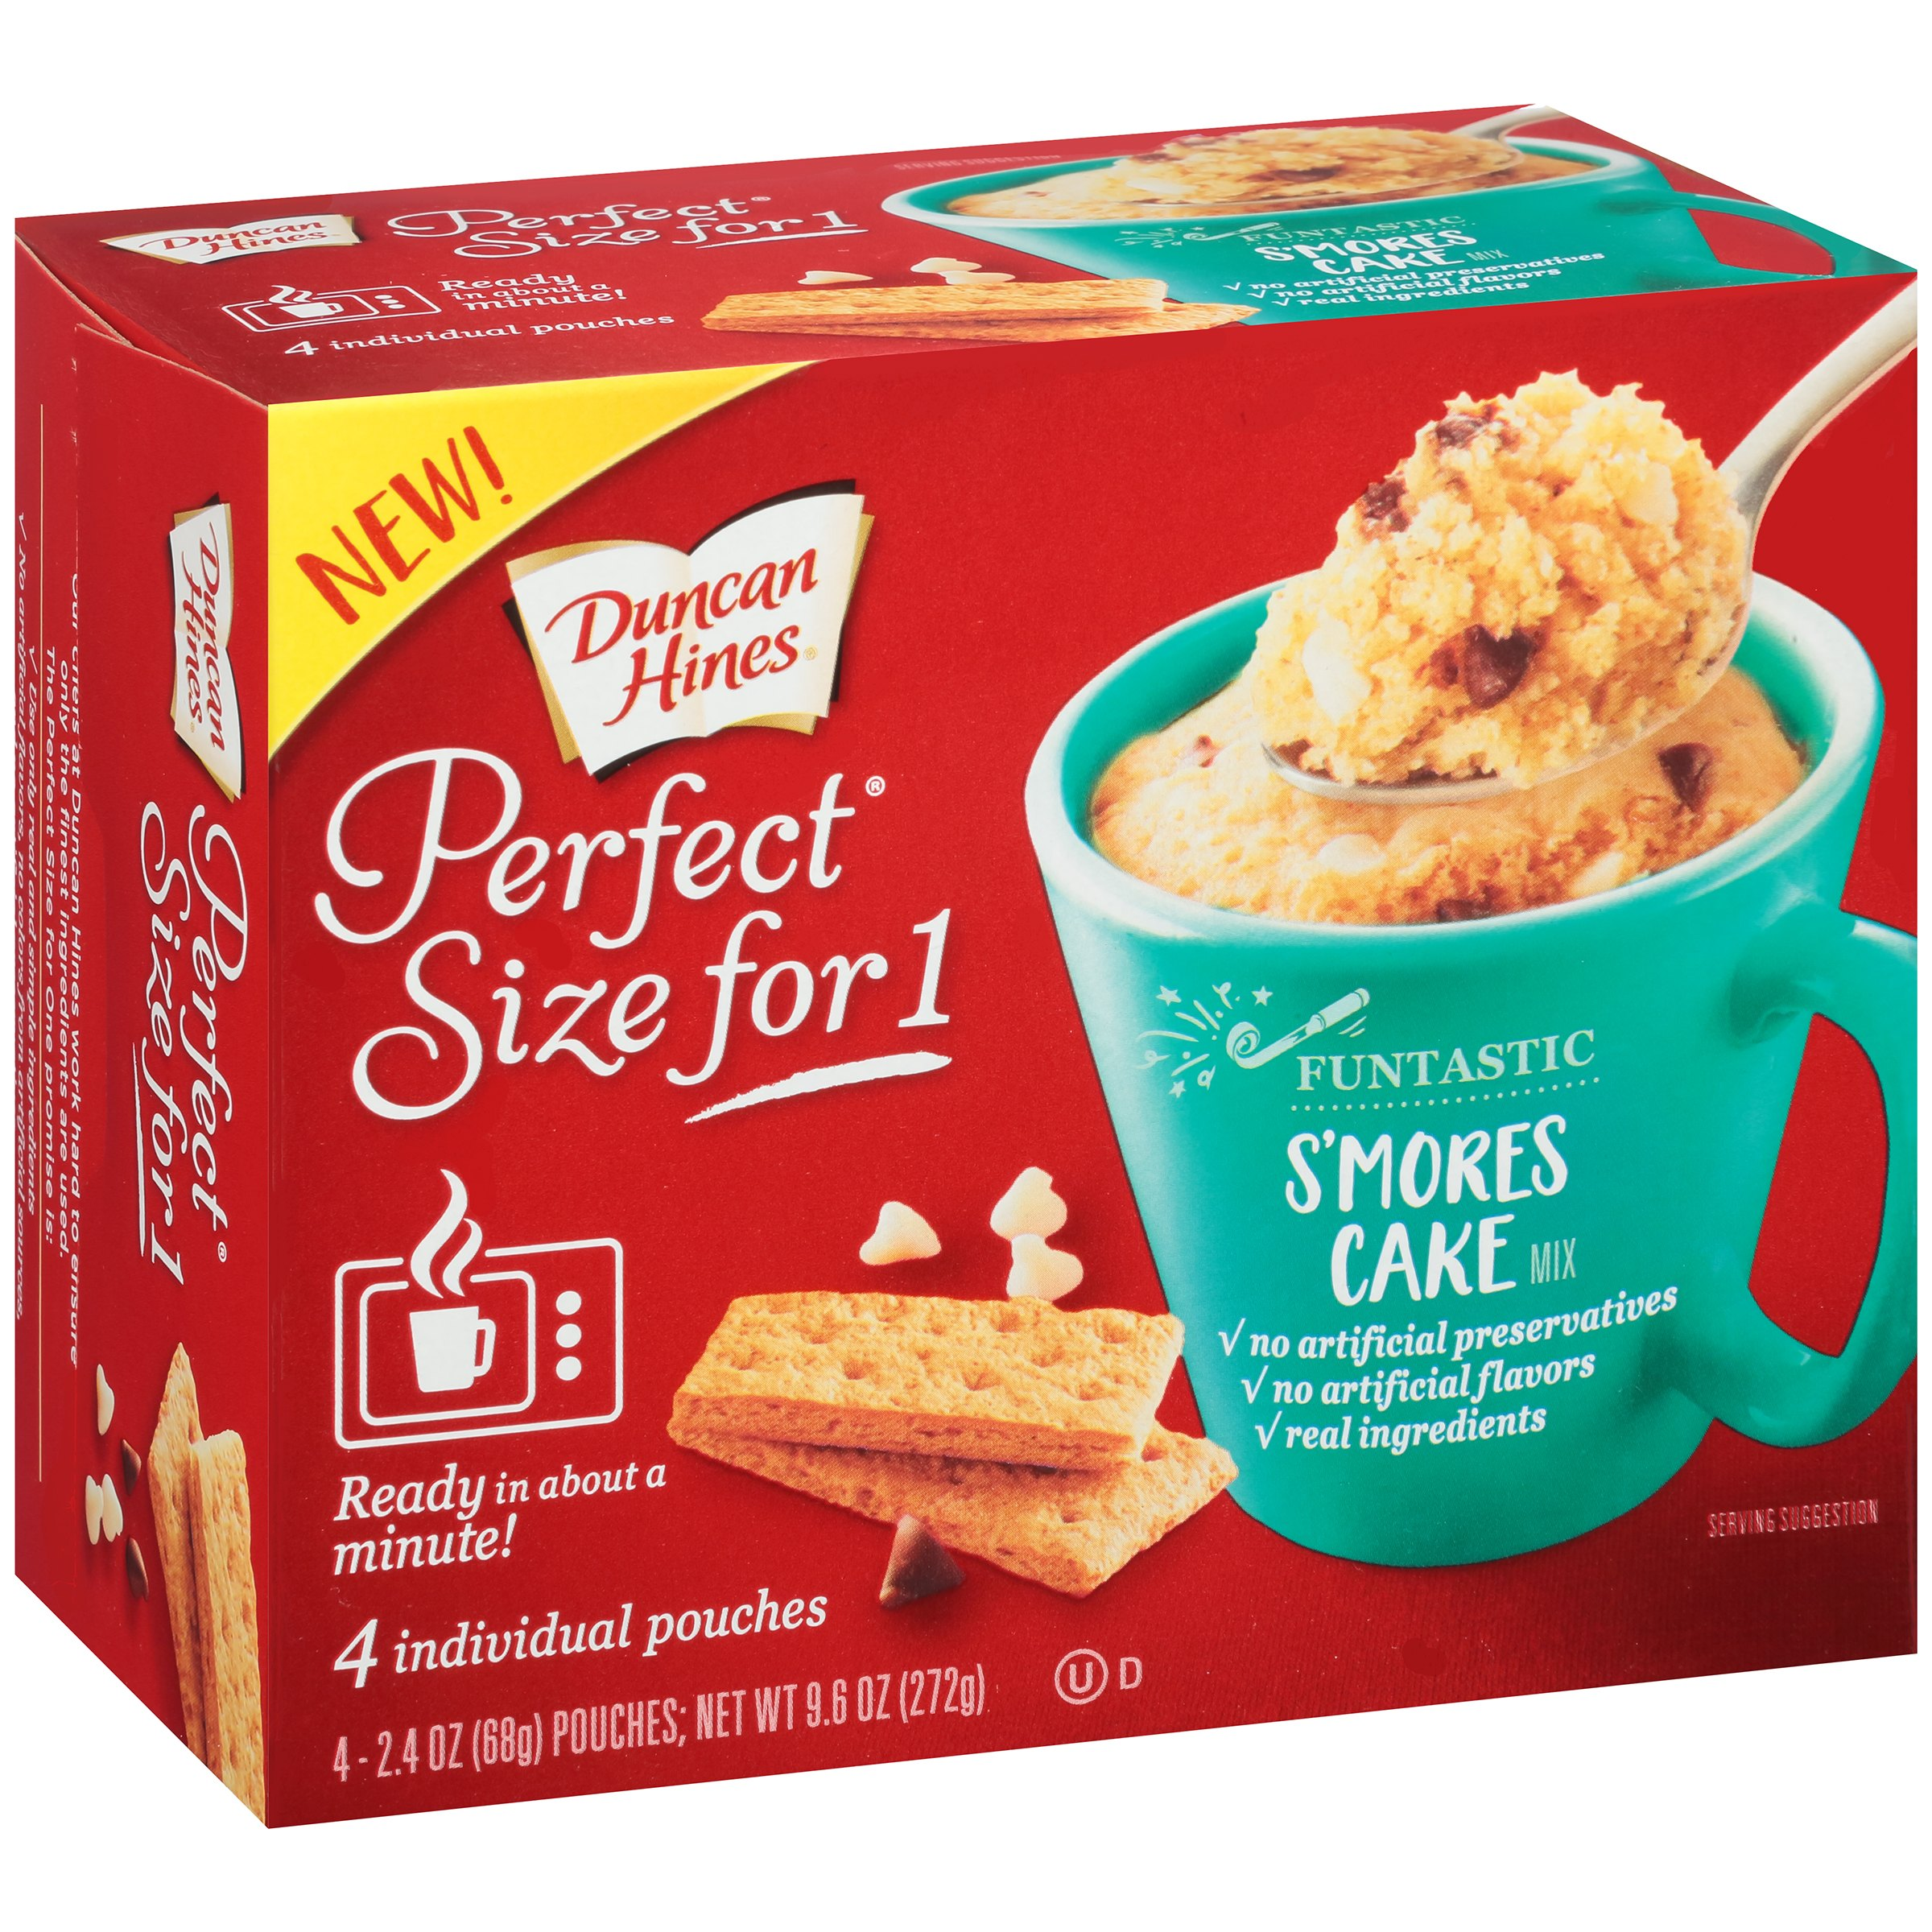 Duncan Hines® Perfect Size for One® Funtastic S'mores Cake Mix 4-2.4 oz Box